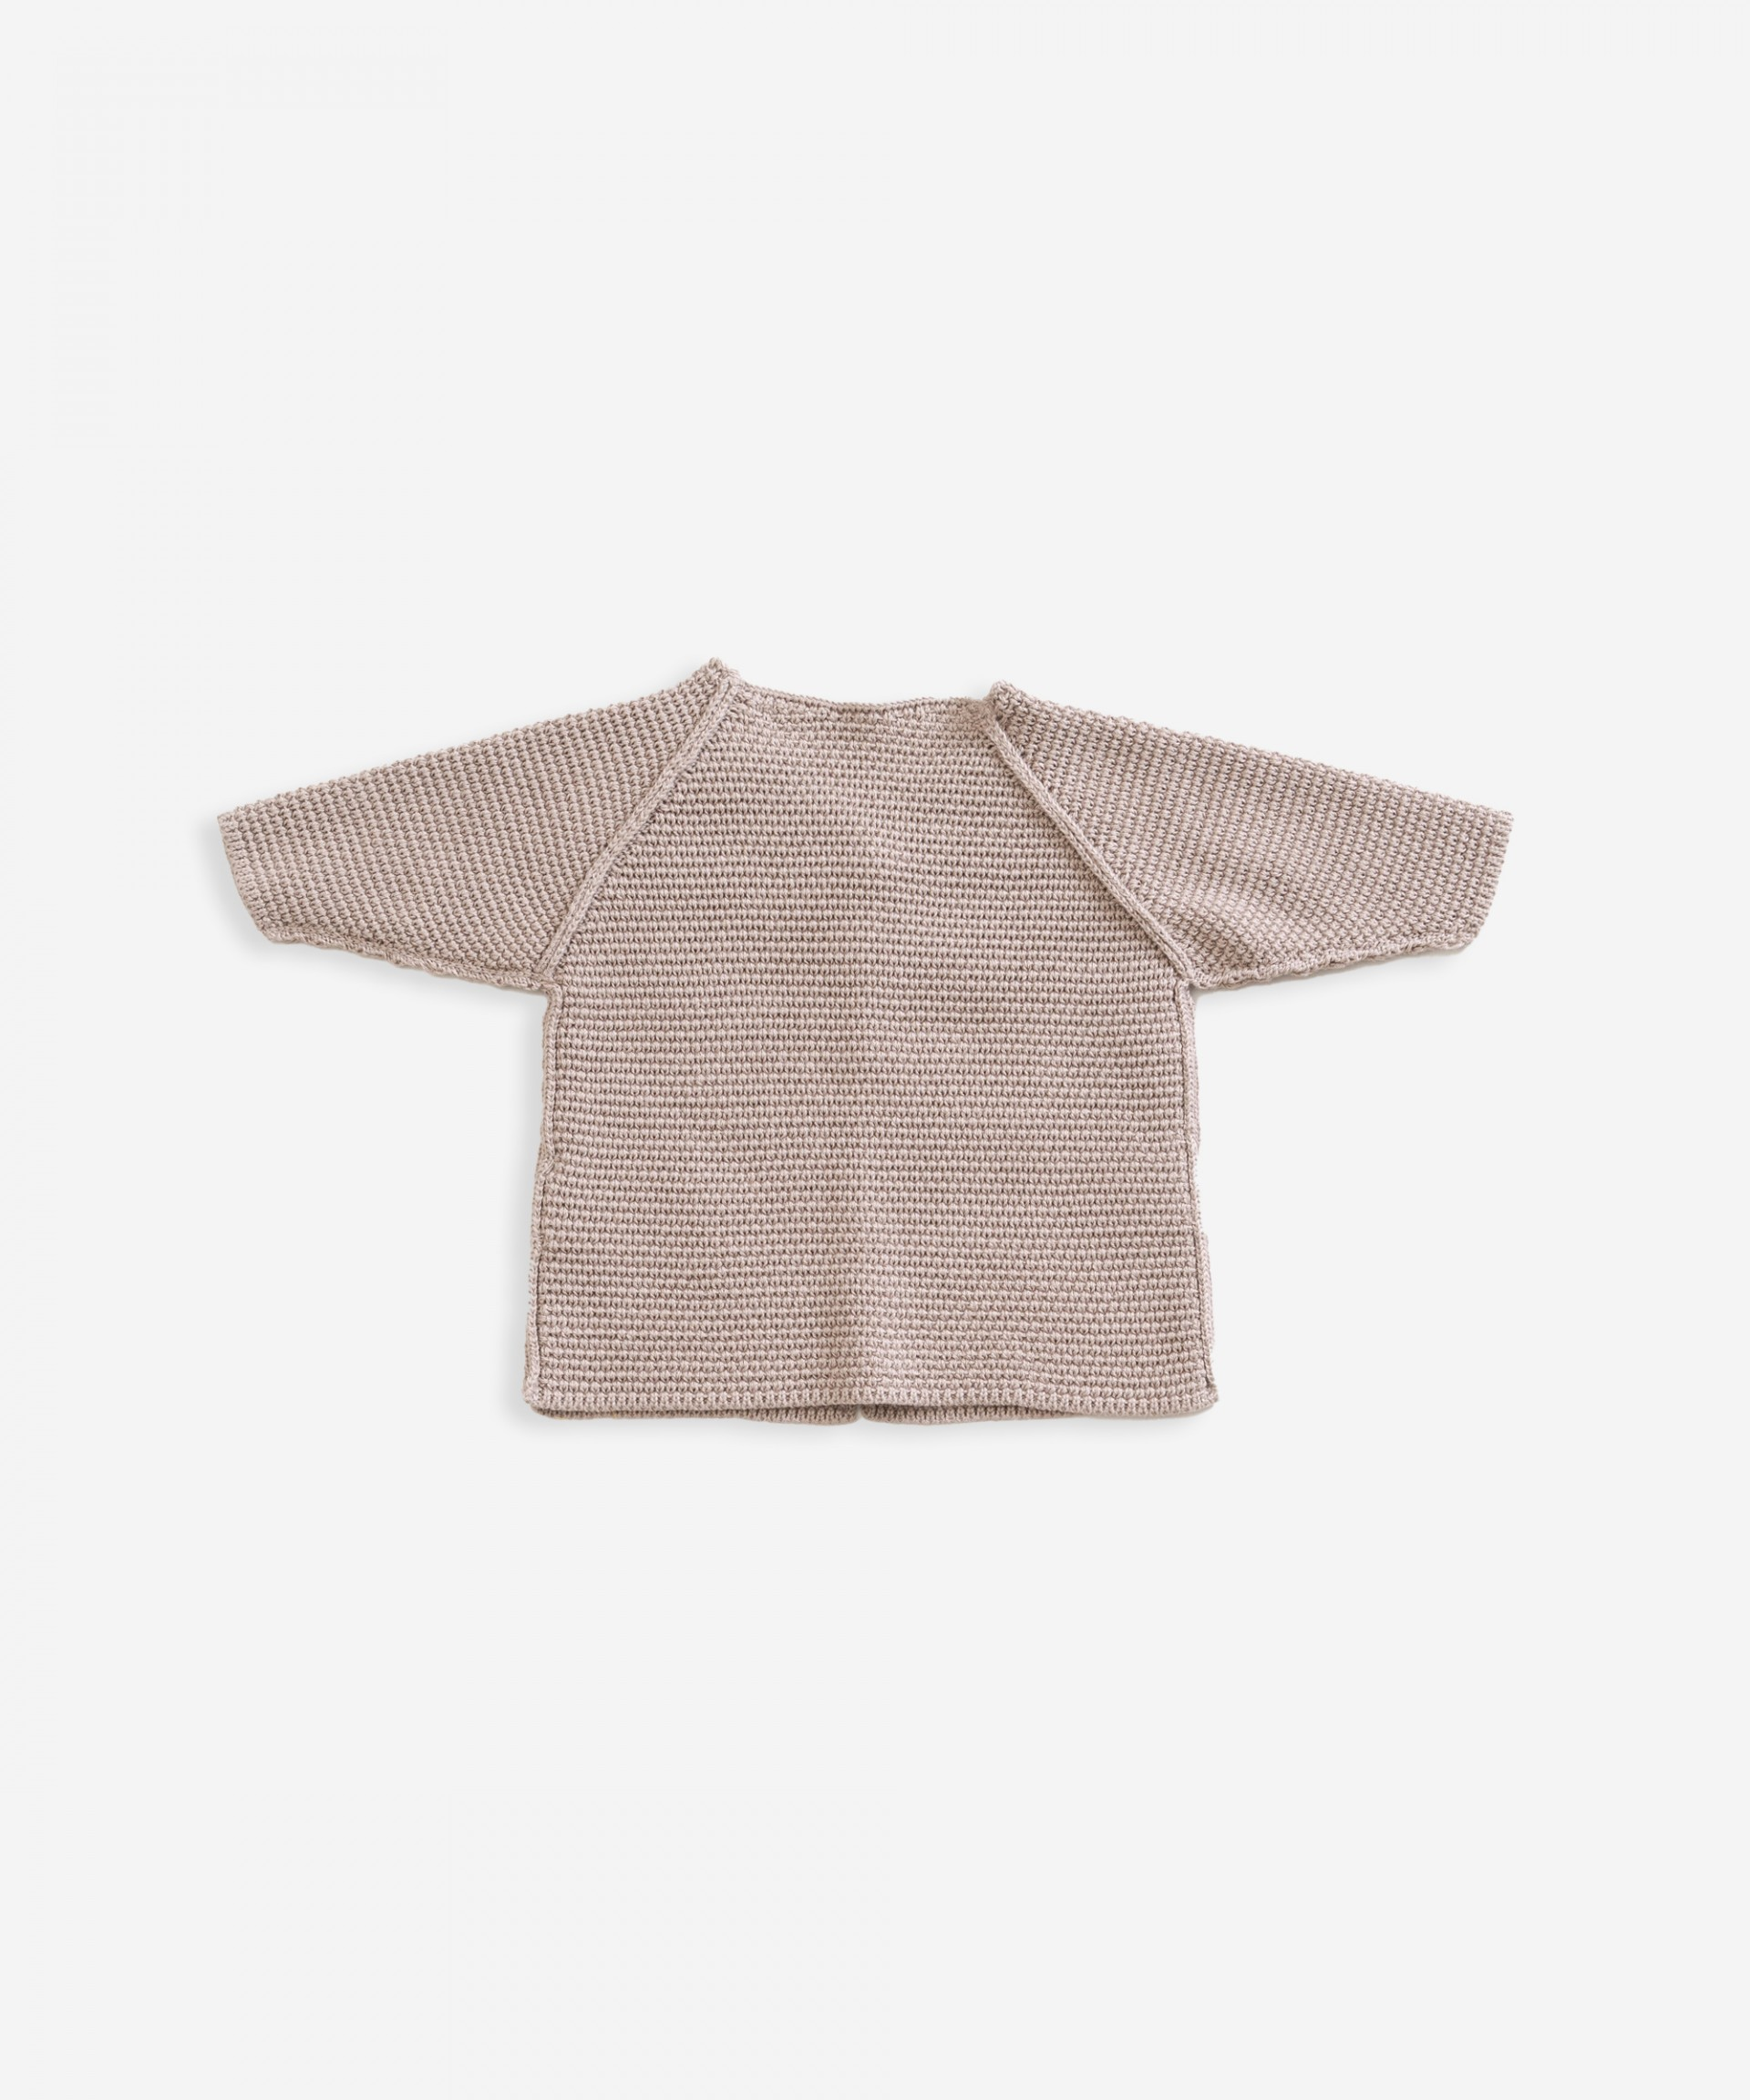 Knitted jacket in organic cotton | Weaving